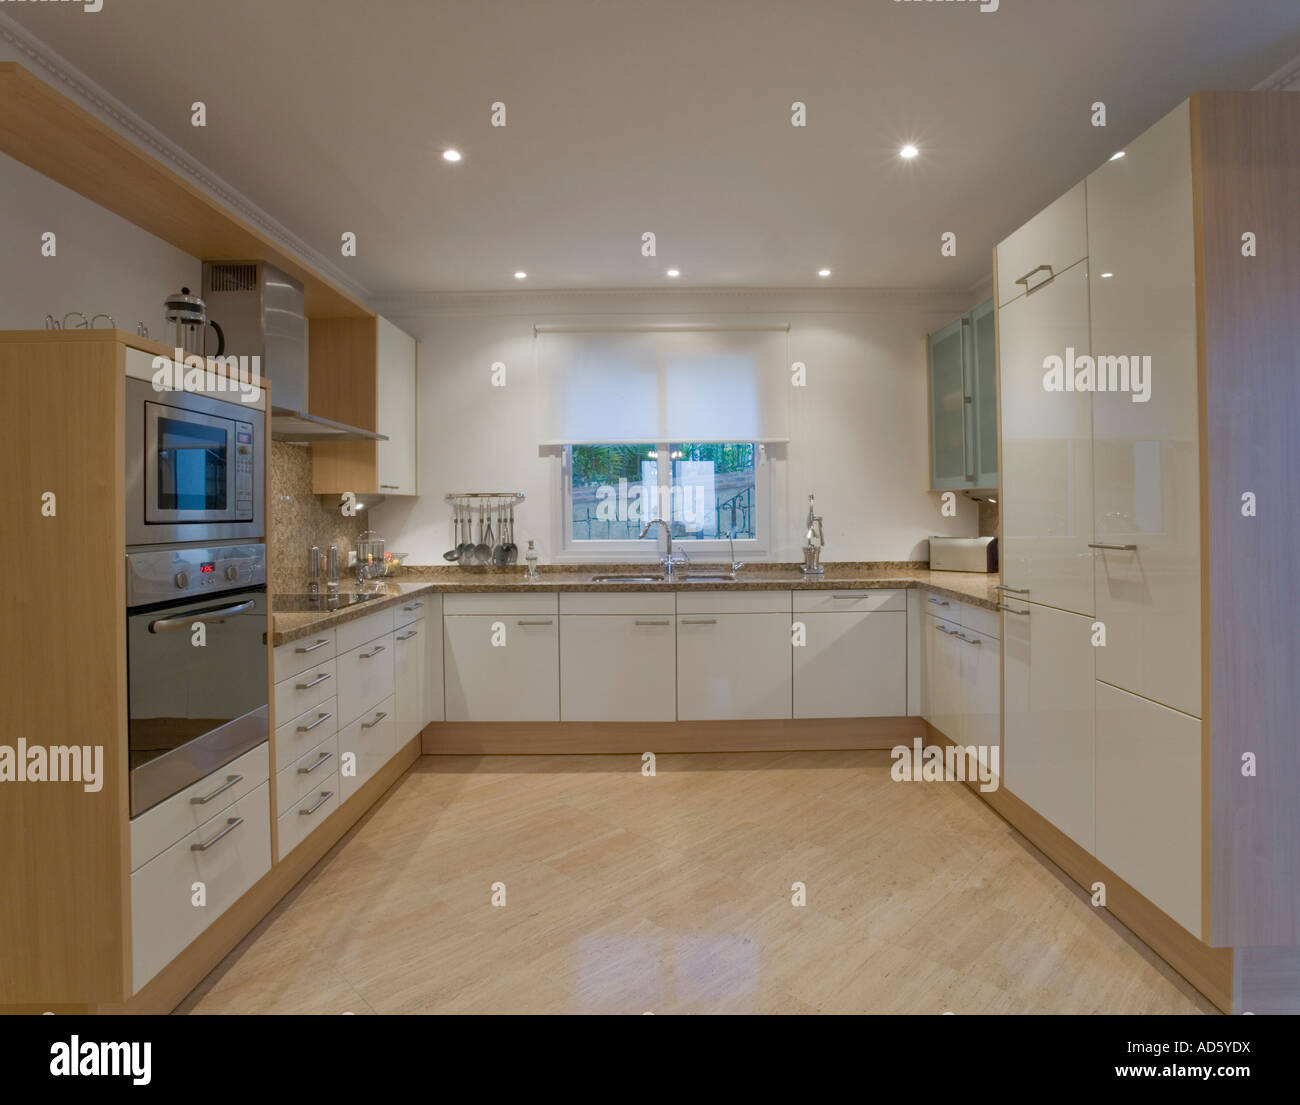 Modern White Kitchen With Marble Floor Stock Photo Alamy